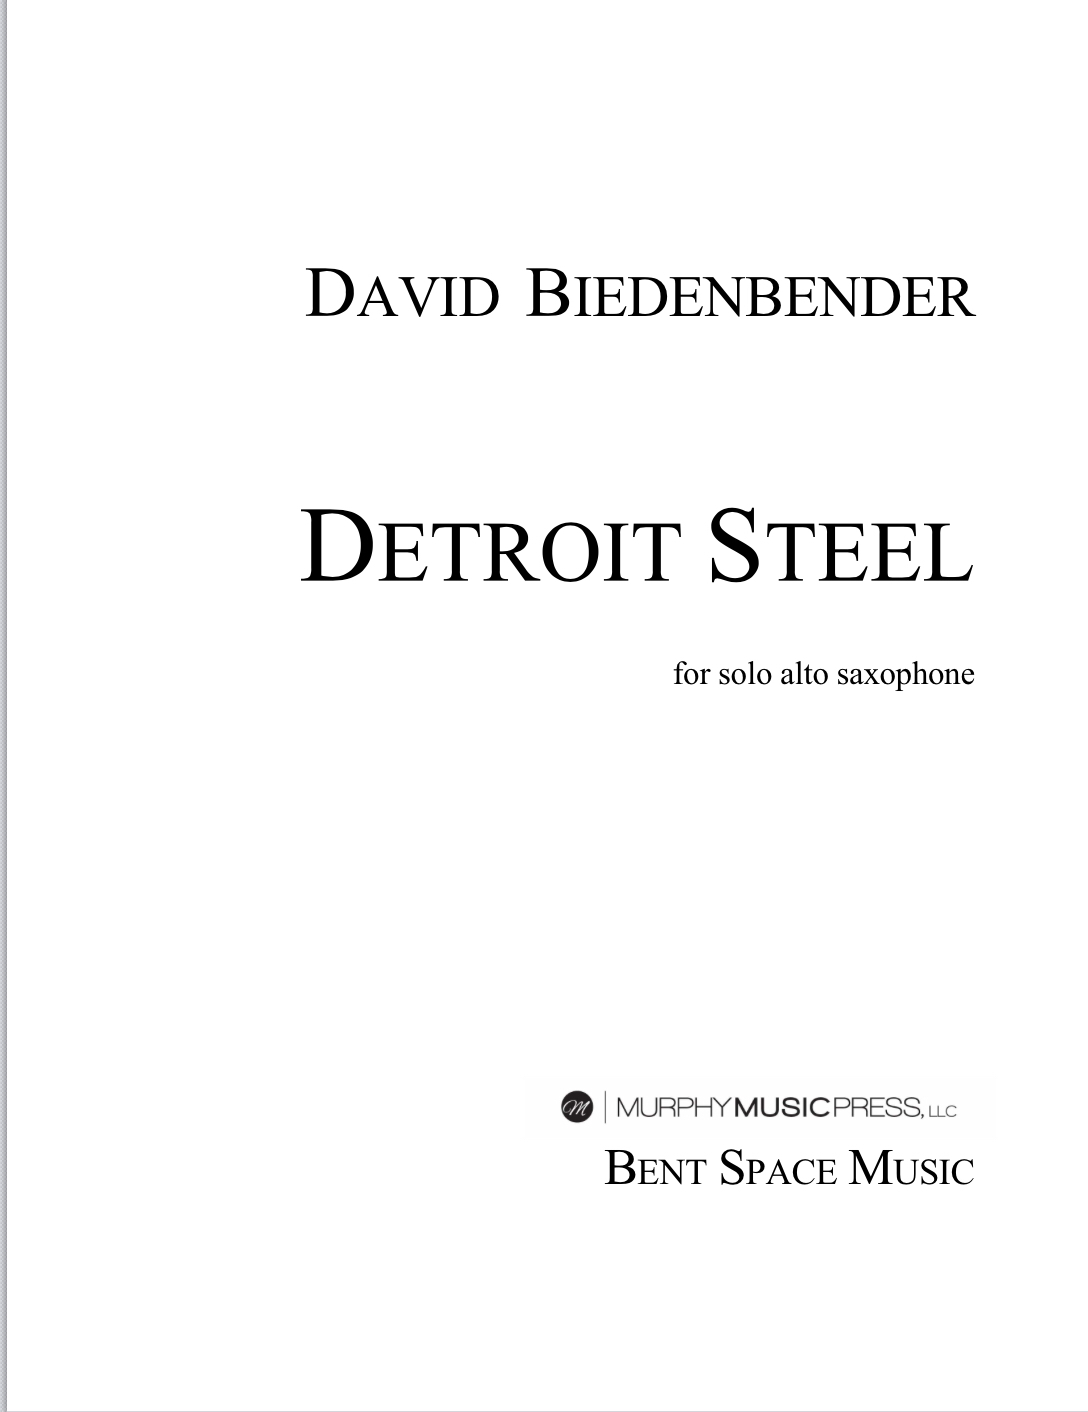 Detroit Steel by David Biedenbender